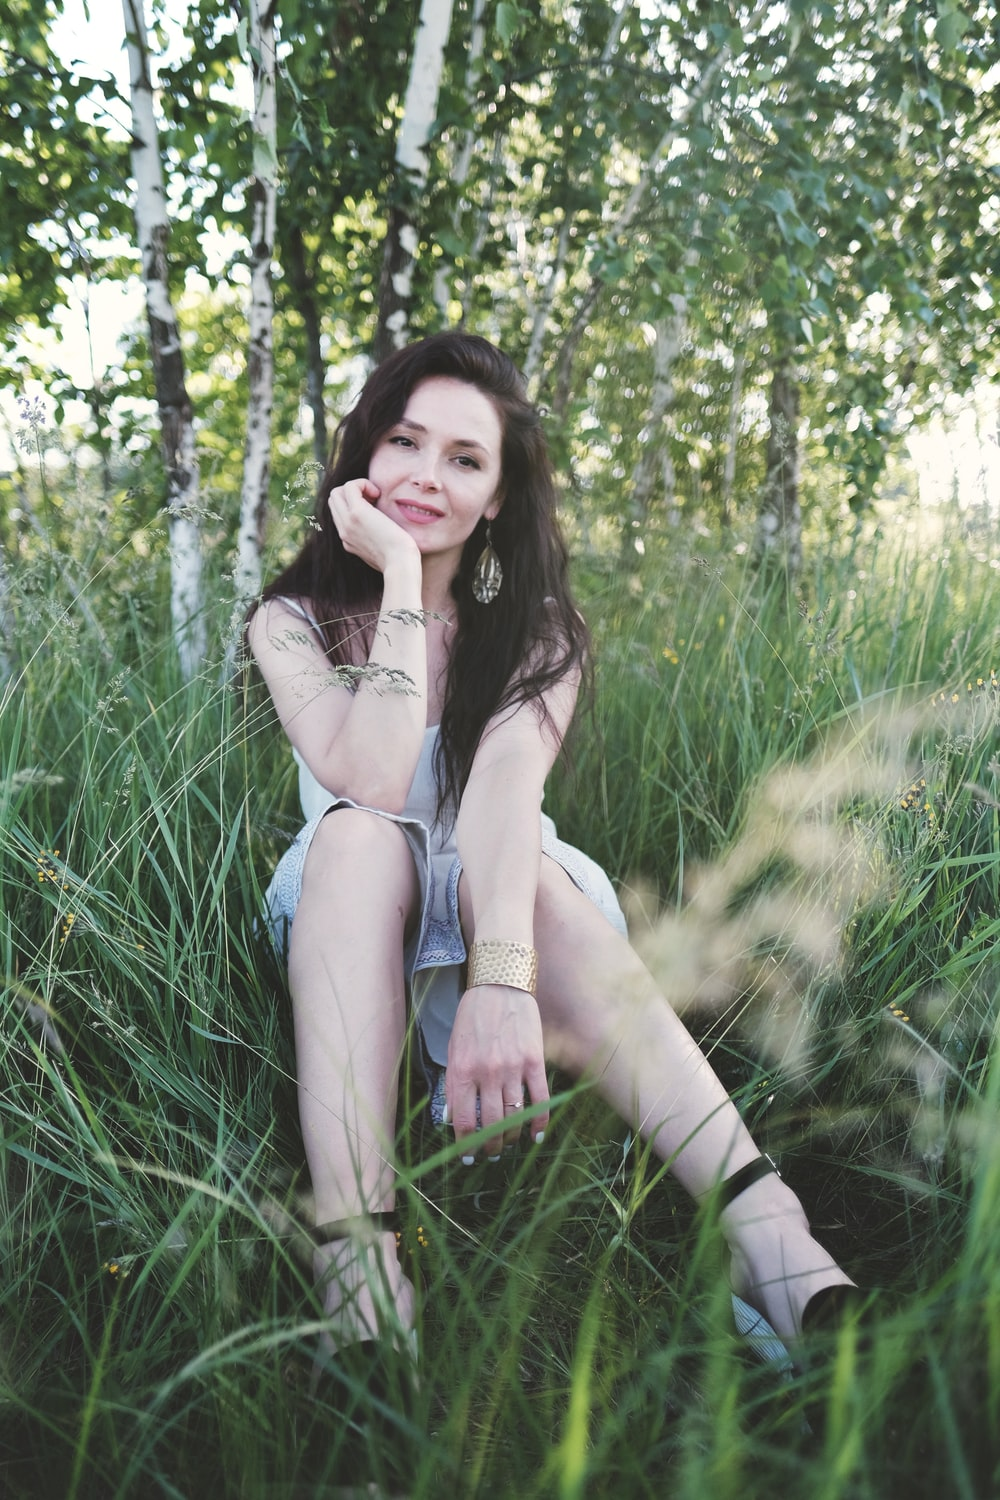 woman in white brassiere and blue denim shorts sitting on green grass field